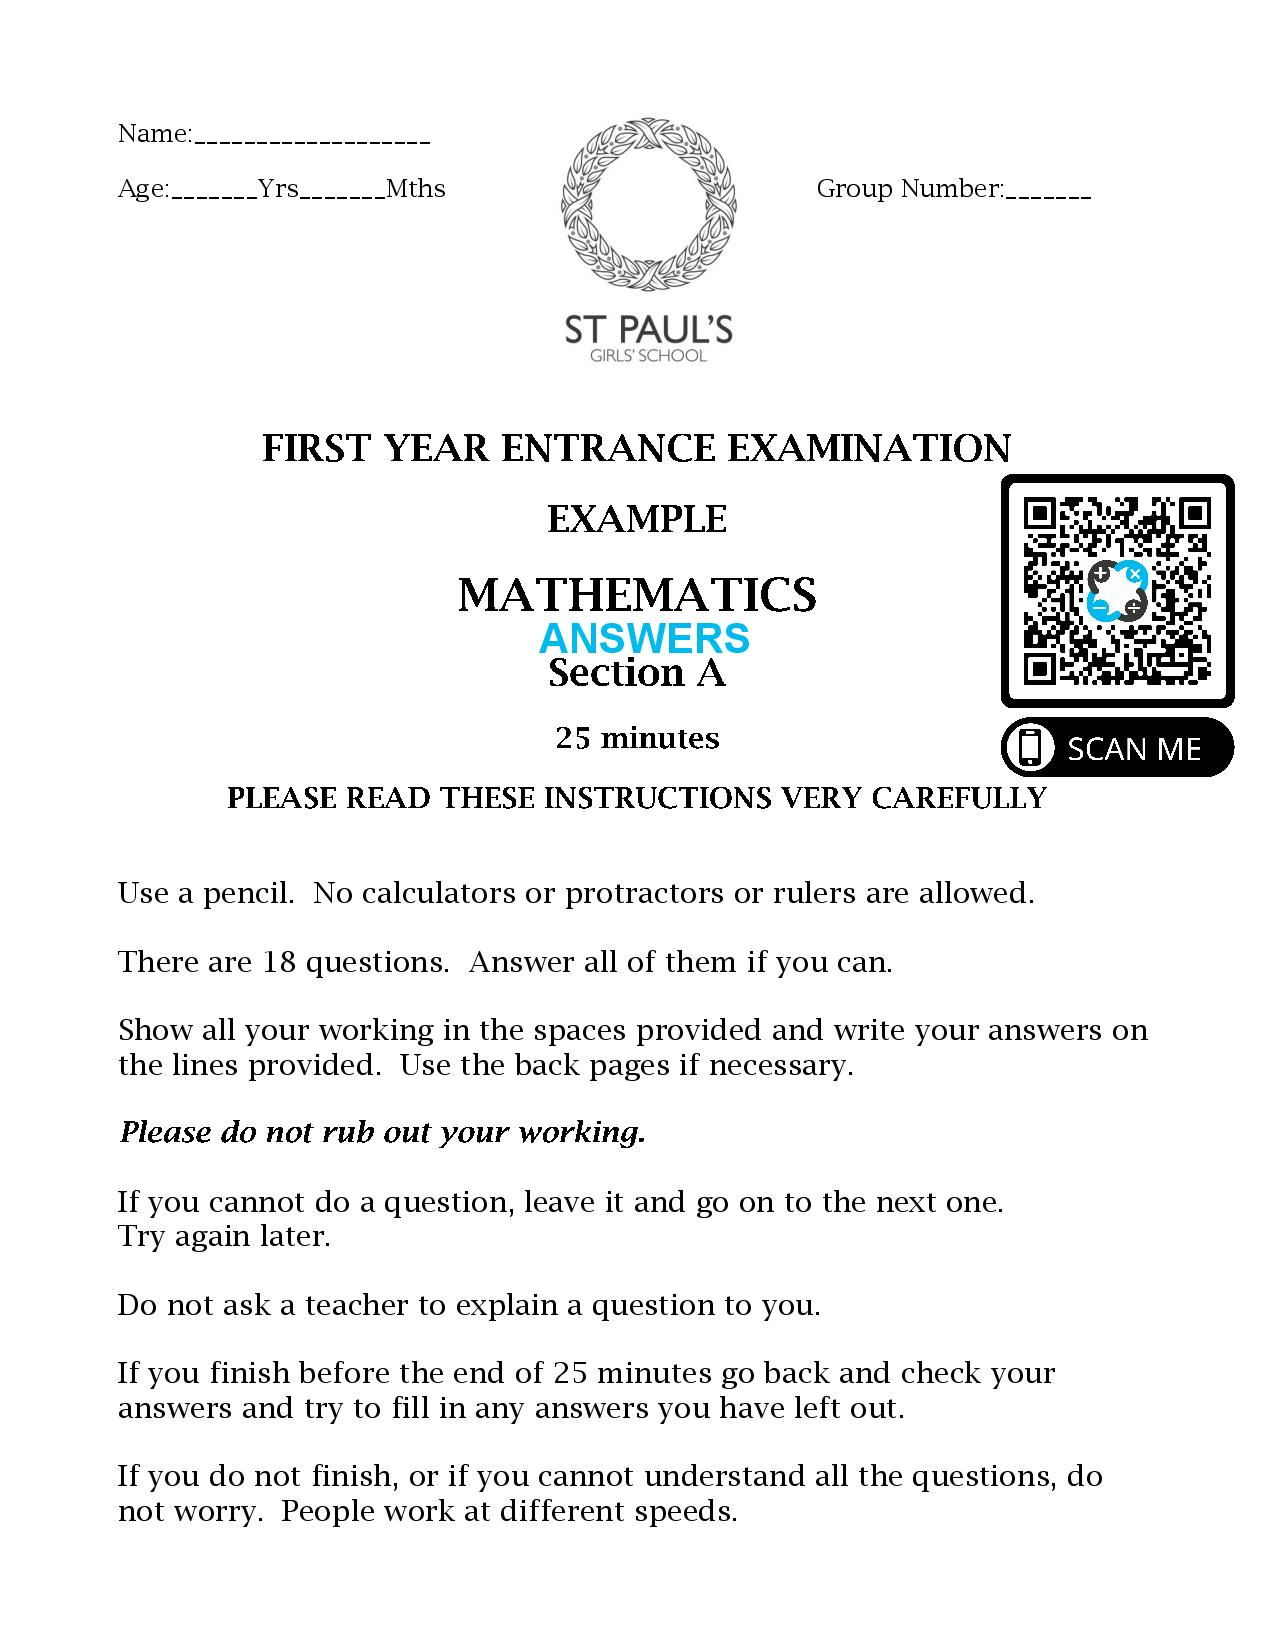 St Pauls School FIRST YEAR ENTRANCE EXAMINATION EXAMPLE MATHEMATICS 2017 SECTION A Answer Paper 2 page 001